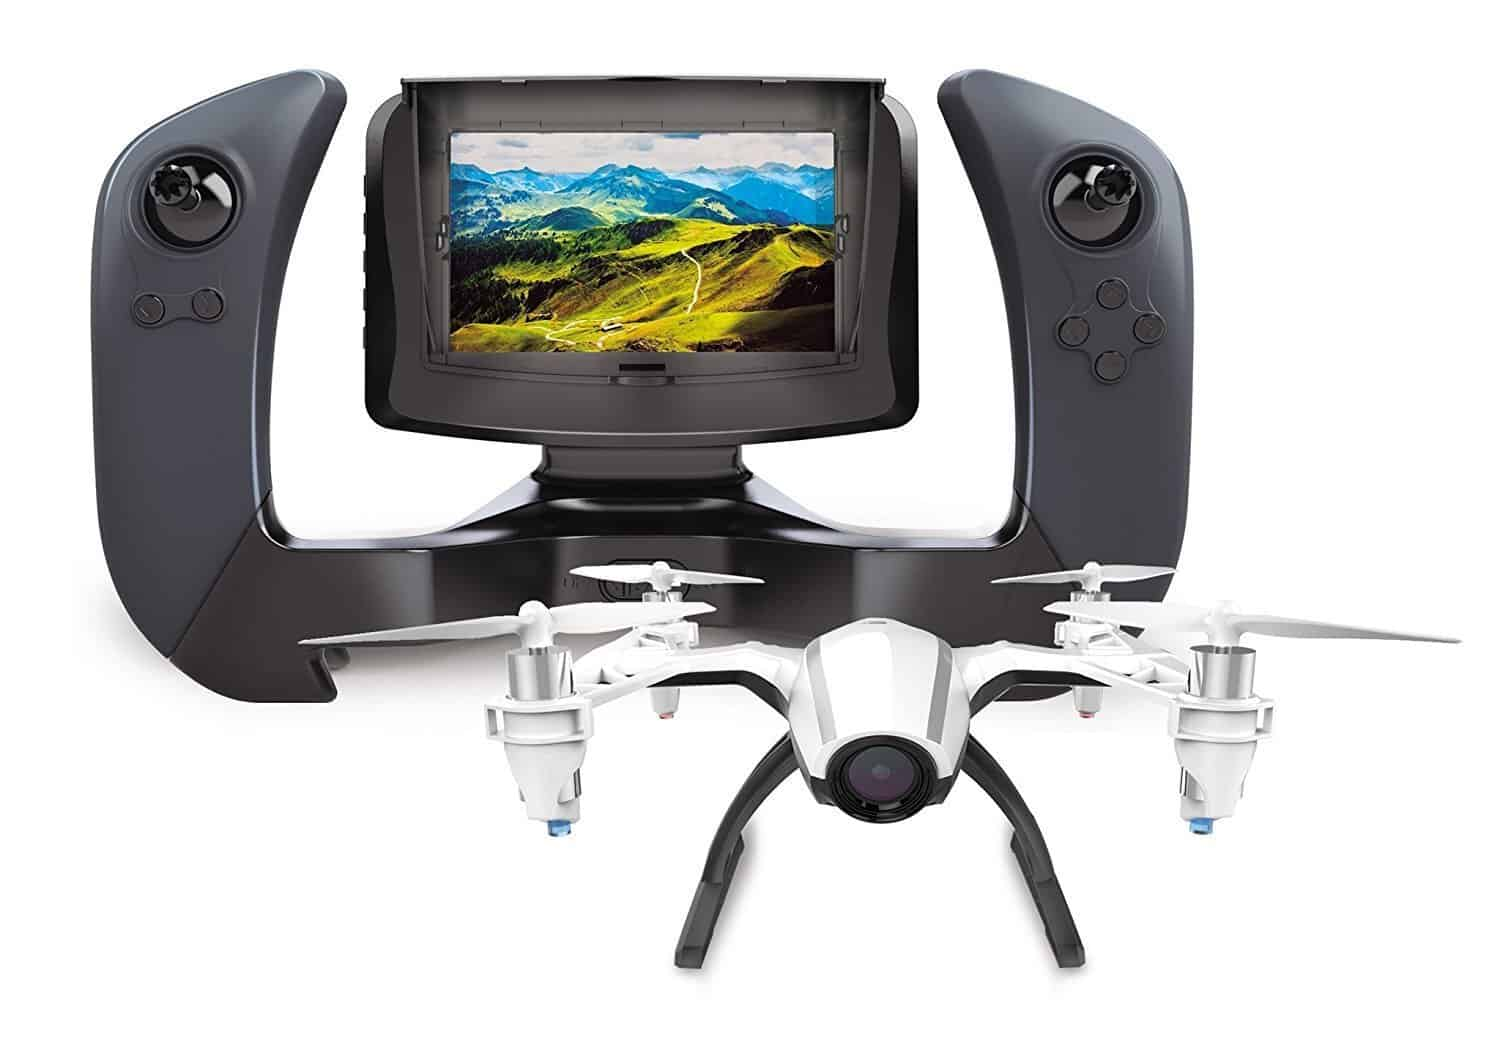 ar drone 2 specs with Bestdronesunder200 on Zerg Wallpaper furthermore Pioneer Avh 1330nex 2 Din 6 2 Media Dvd Receiver as well 68138 Sony Xperia Z Sa Launch Window Announced as well 3144 Nikon Reveals D5 Camera Full Frame  4k Uhd  Iso 3 28 Million as well Suzuki Gsx R600 Srad Motorcycle 1998.